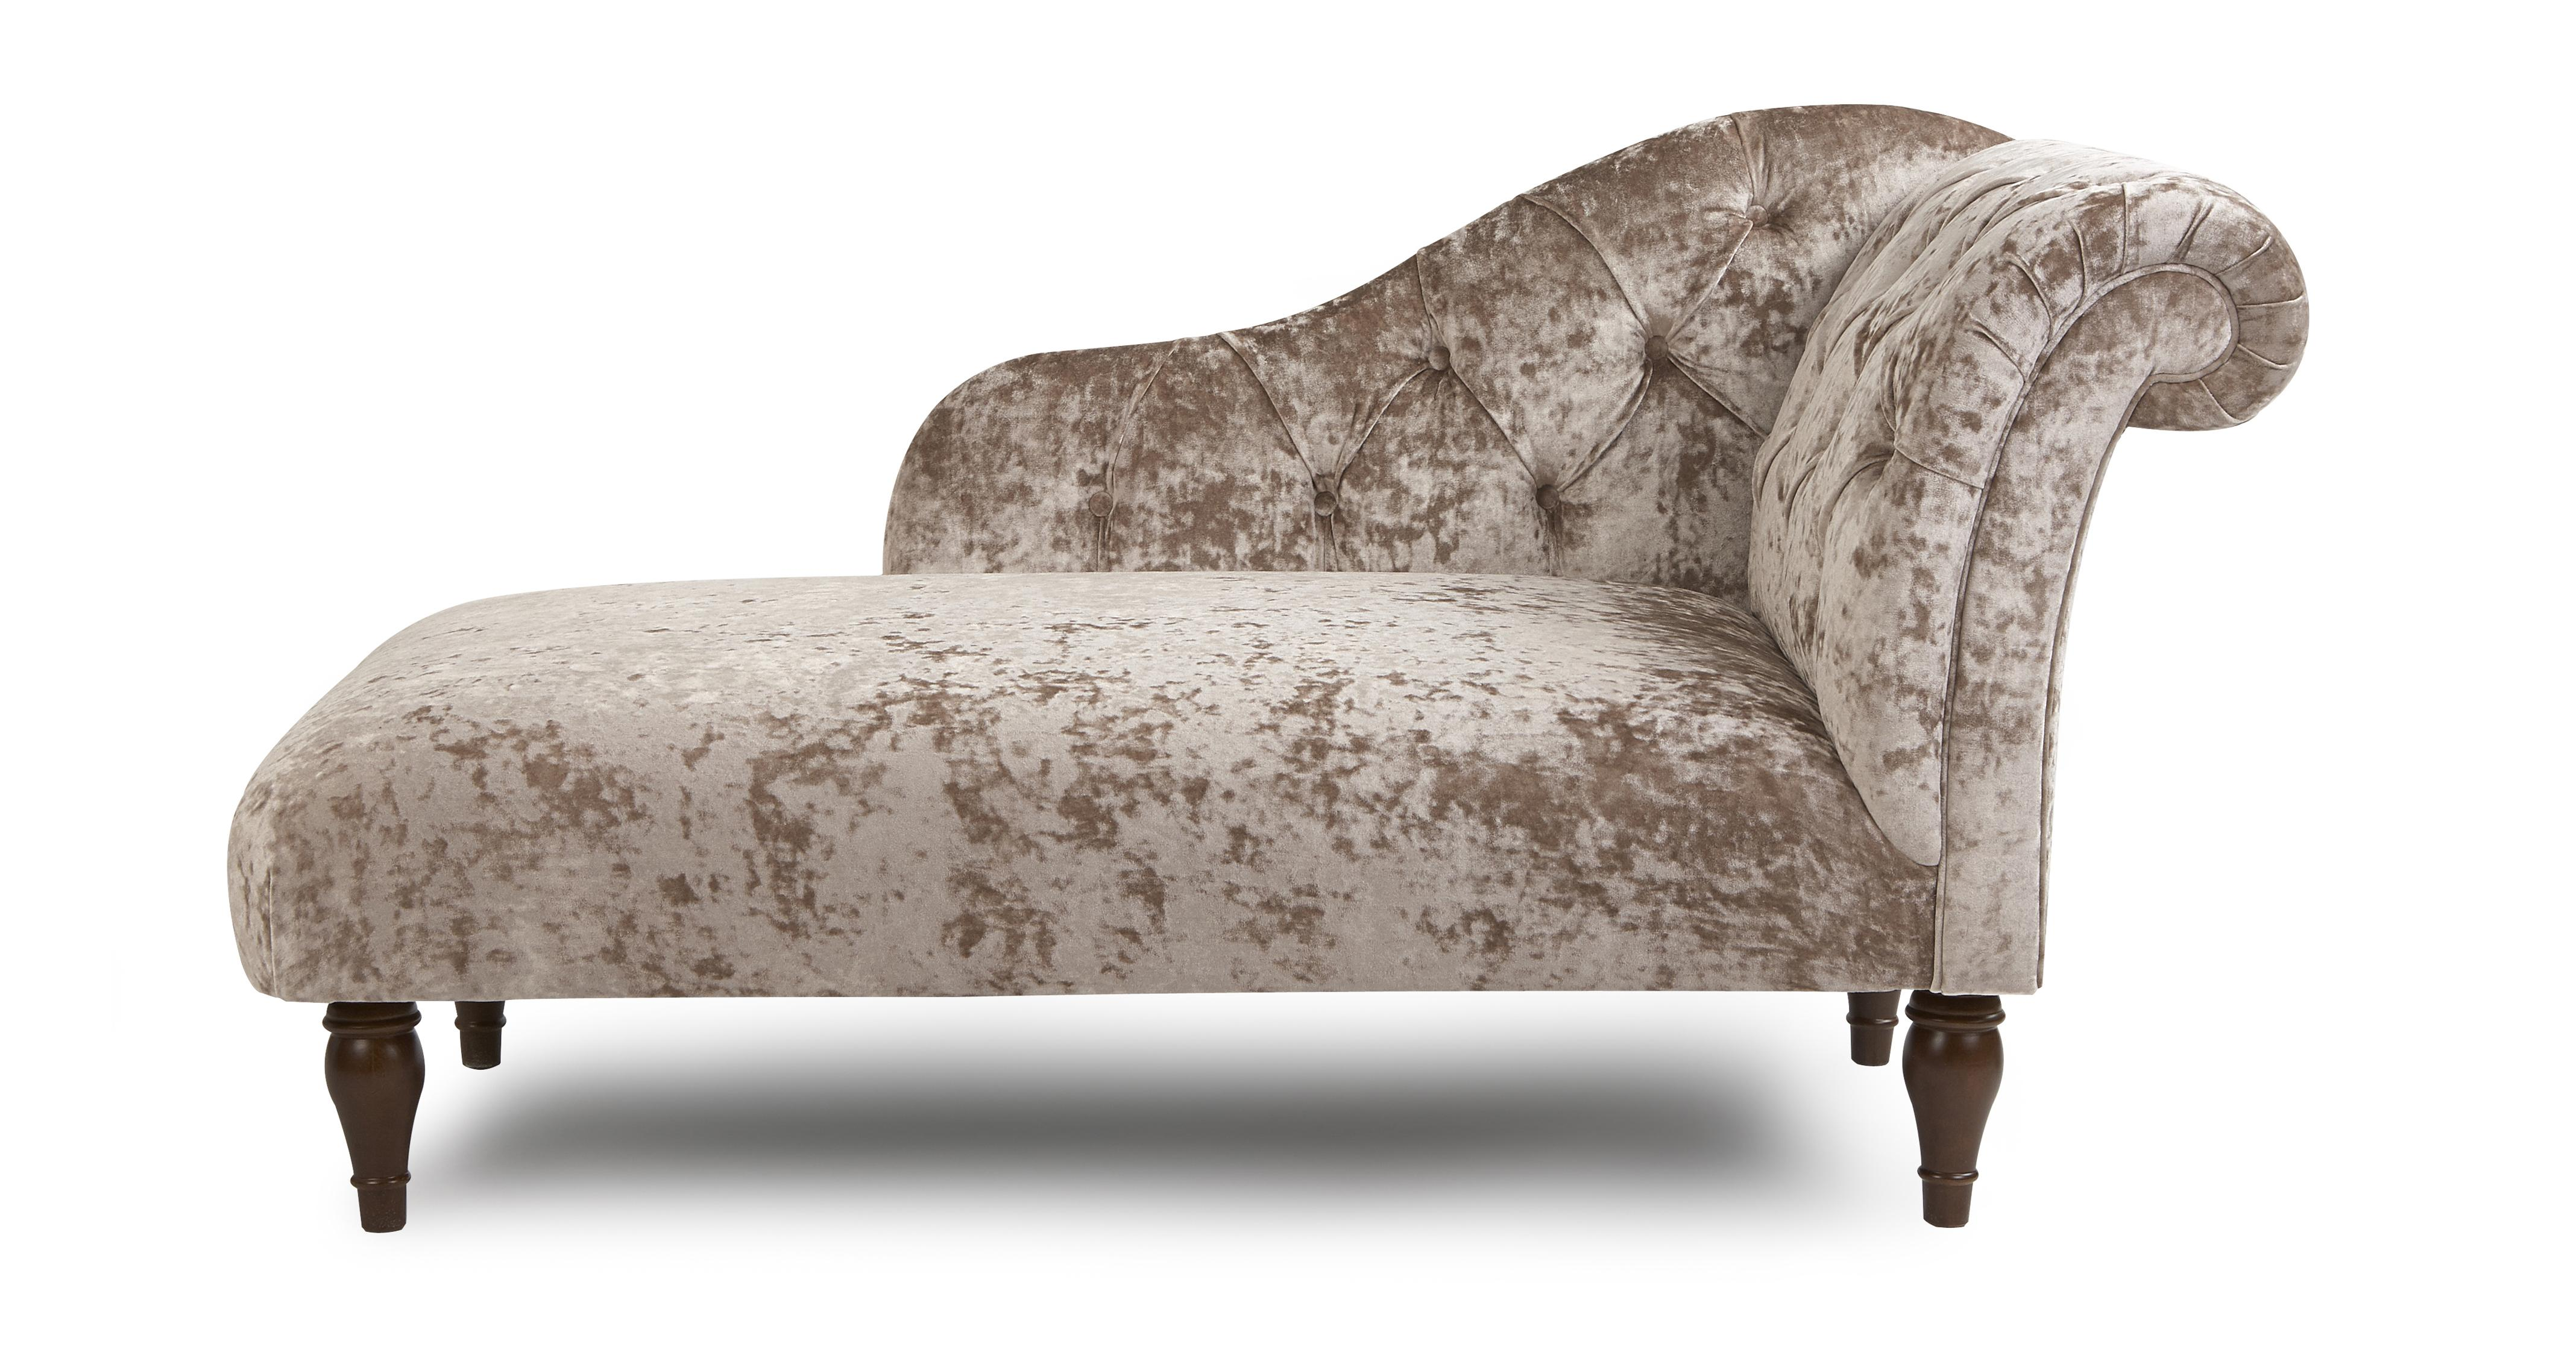 Paloma chaise longue dfs ireland for Chaise longue northern ireland